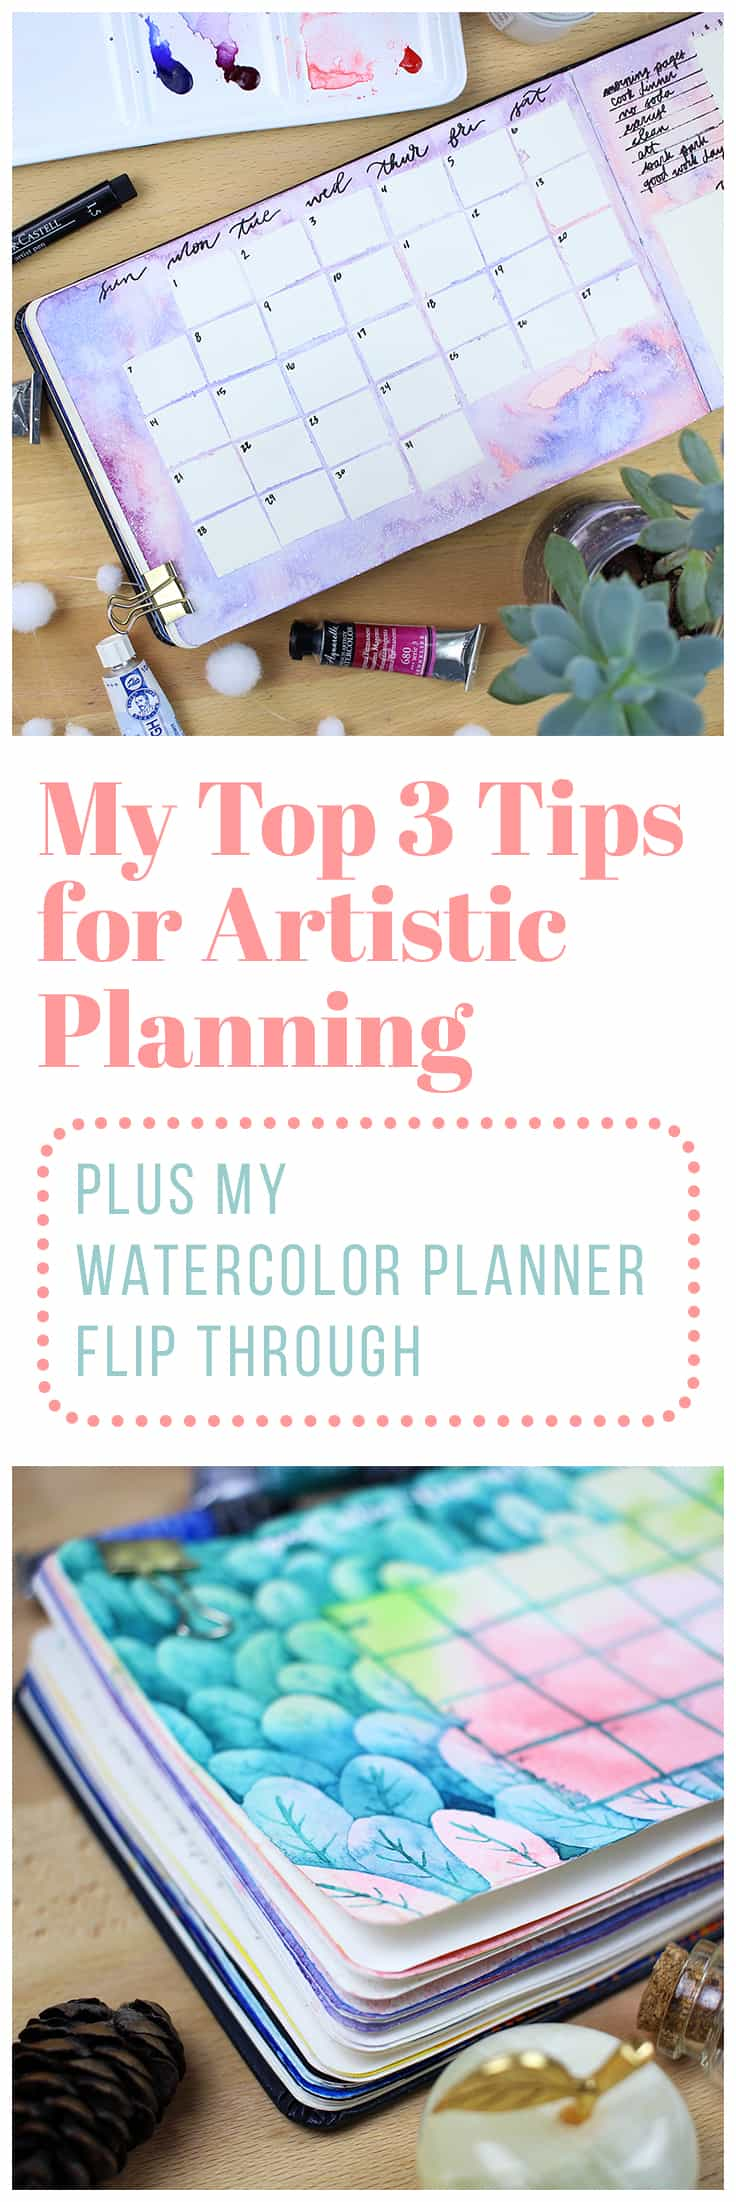 After five months of using my watercolor planner, I finally finished the whole journal! Check out my watercolor planner flip through and see the top three tips for artistic planning that I learned along the way.